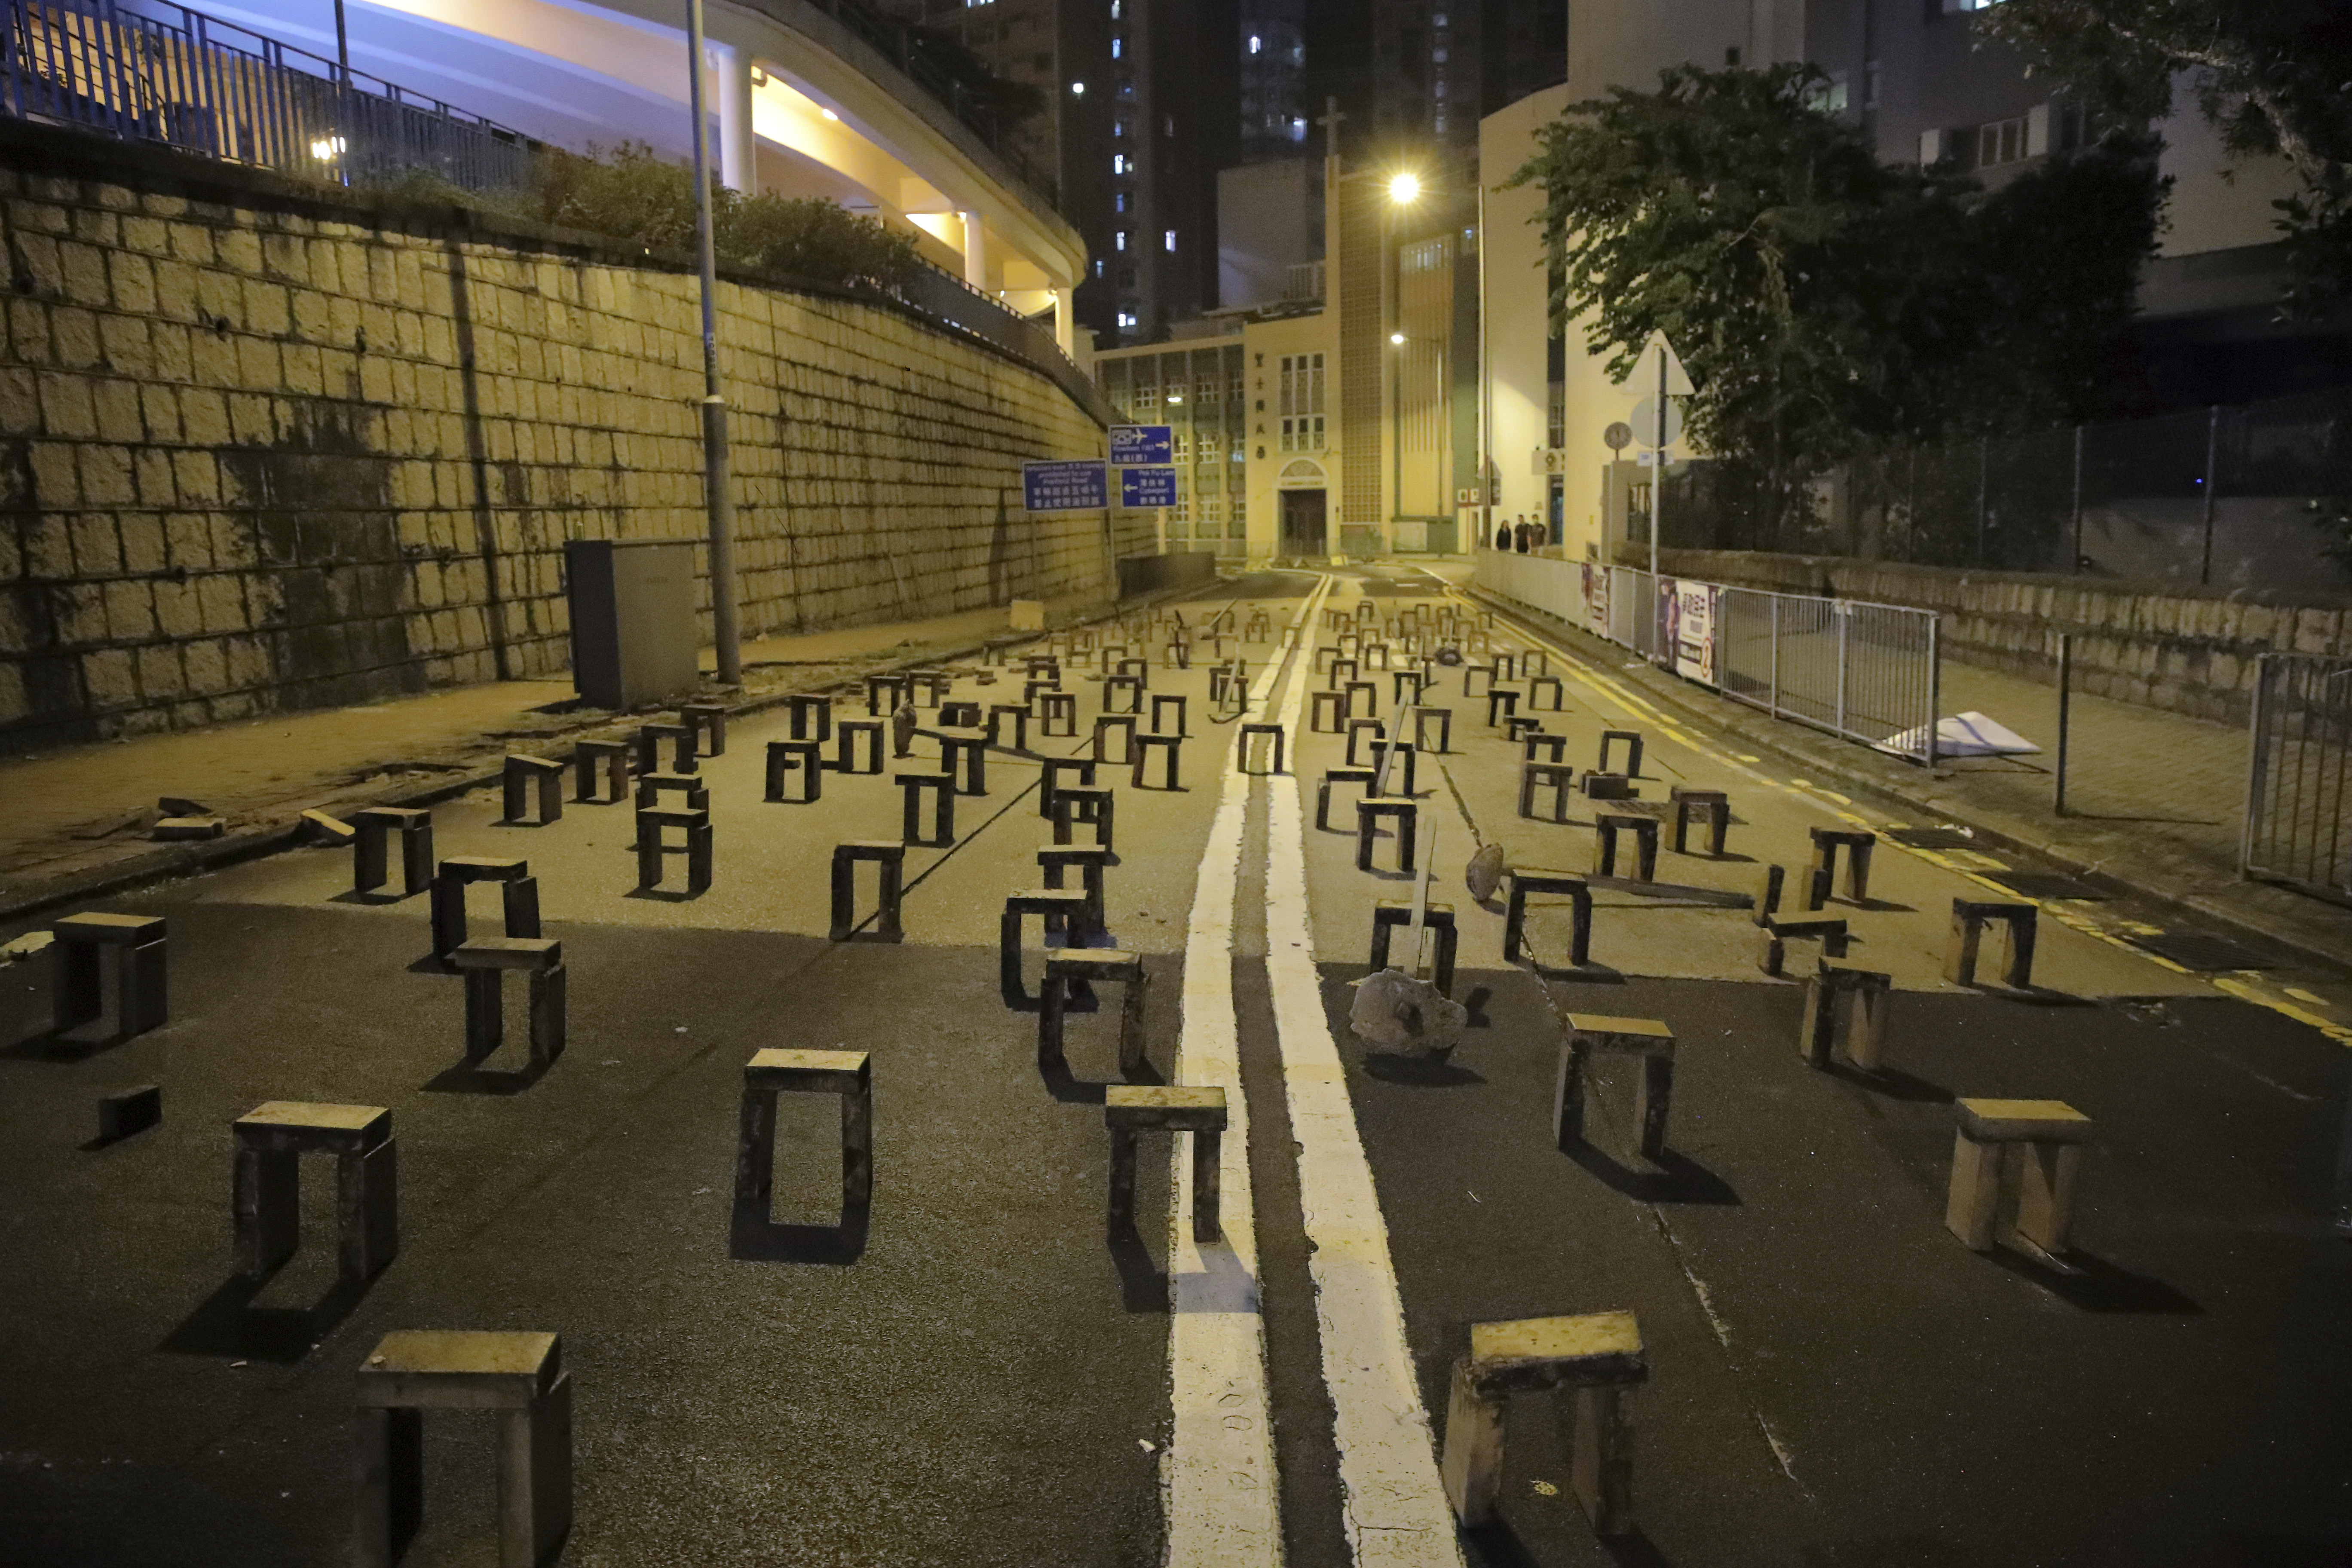 Hong Kong universities turn into battlegrounds